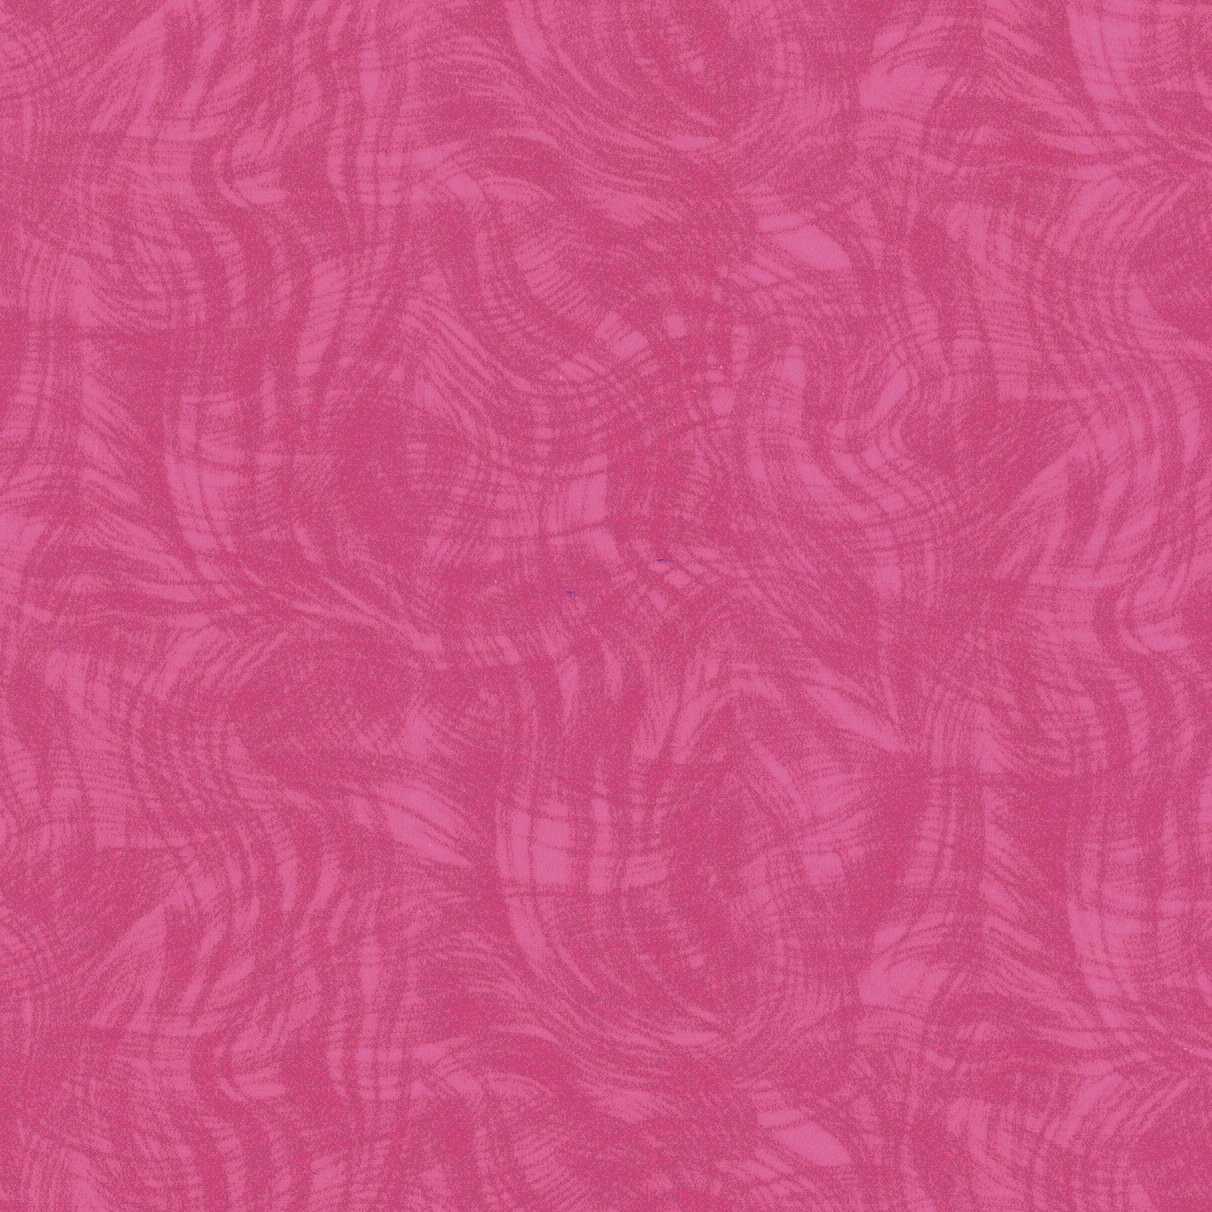 Impressions Moire Pink